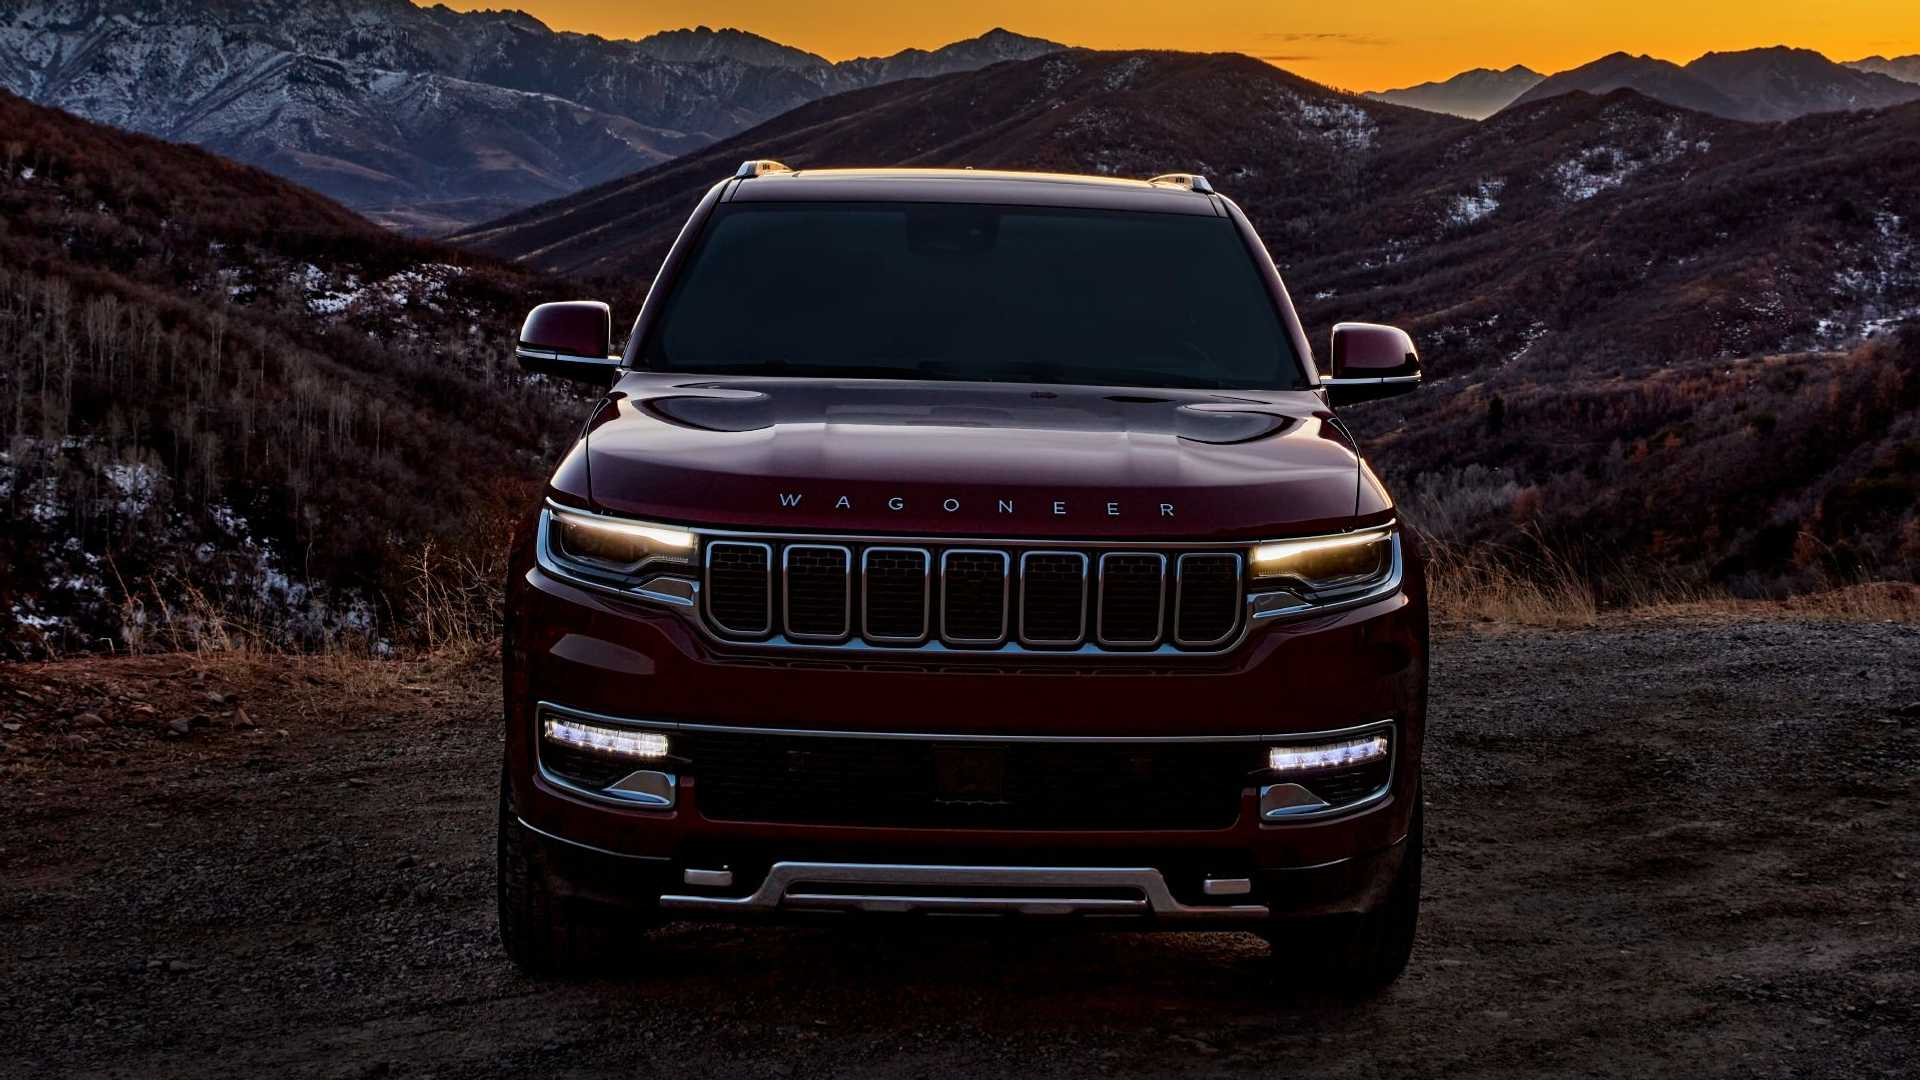 2022-jeep-wagoneer-exterior-front-view-2